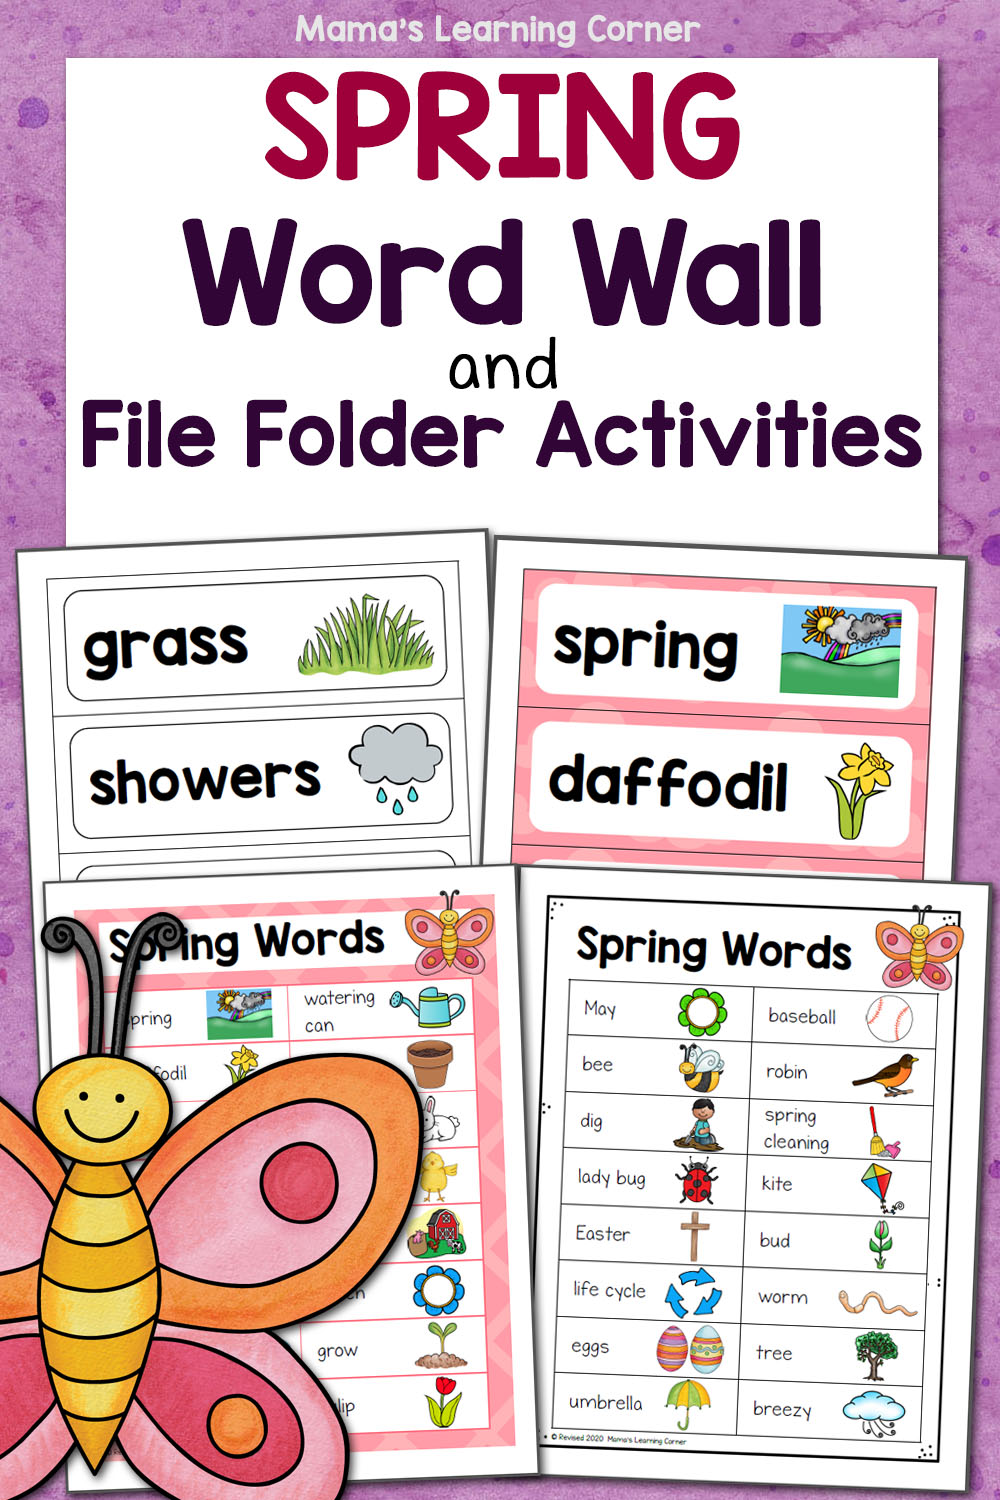 hight resolution of Spring Word Wall with File Folder Activities - Mamas Learning Corner